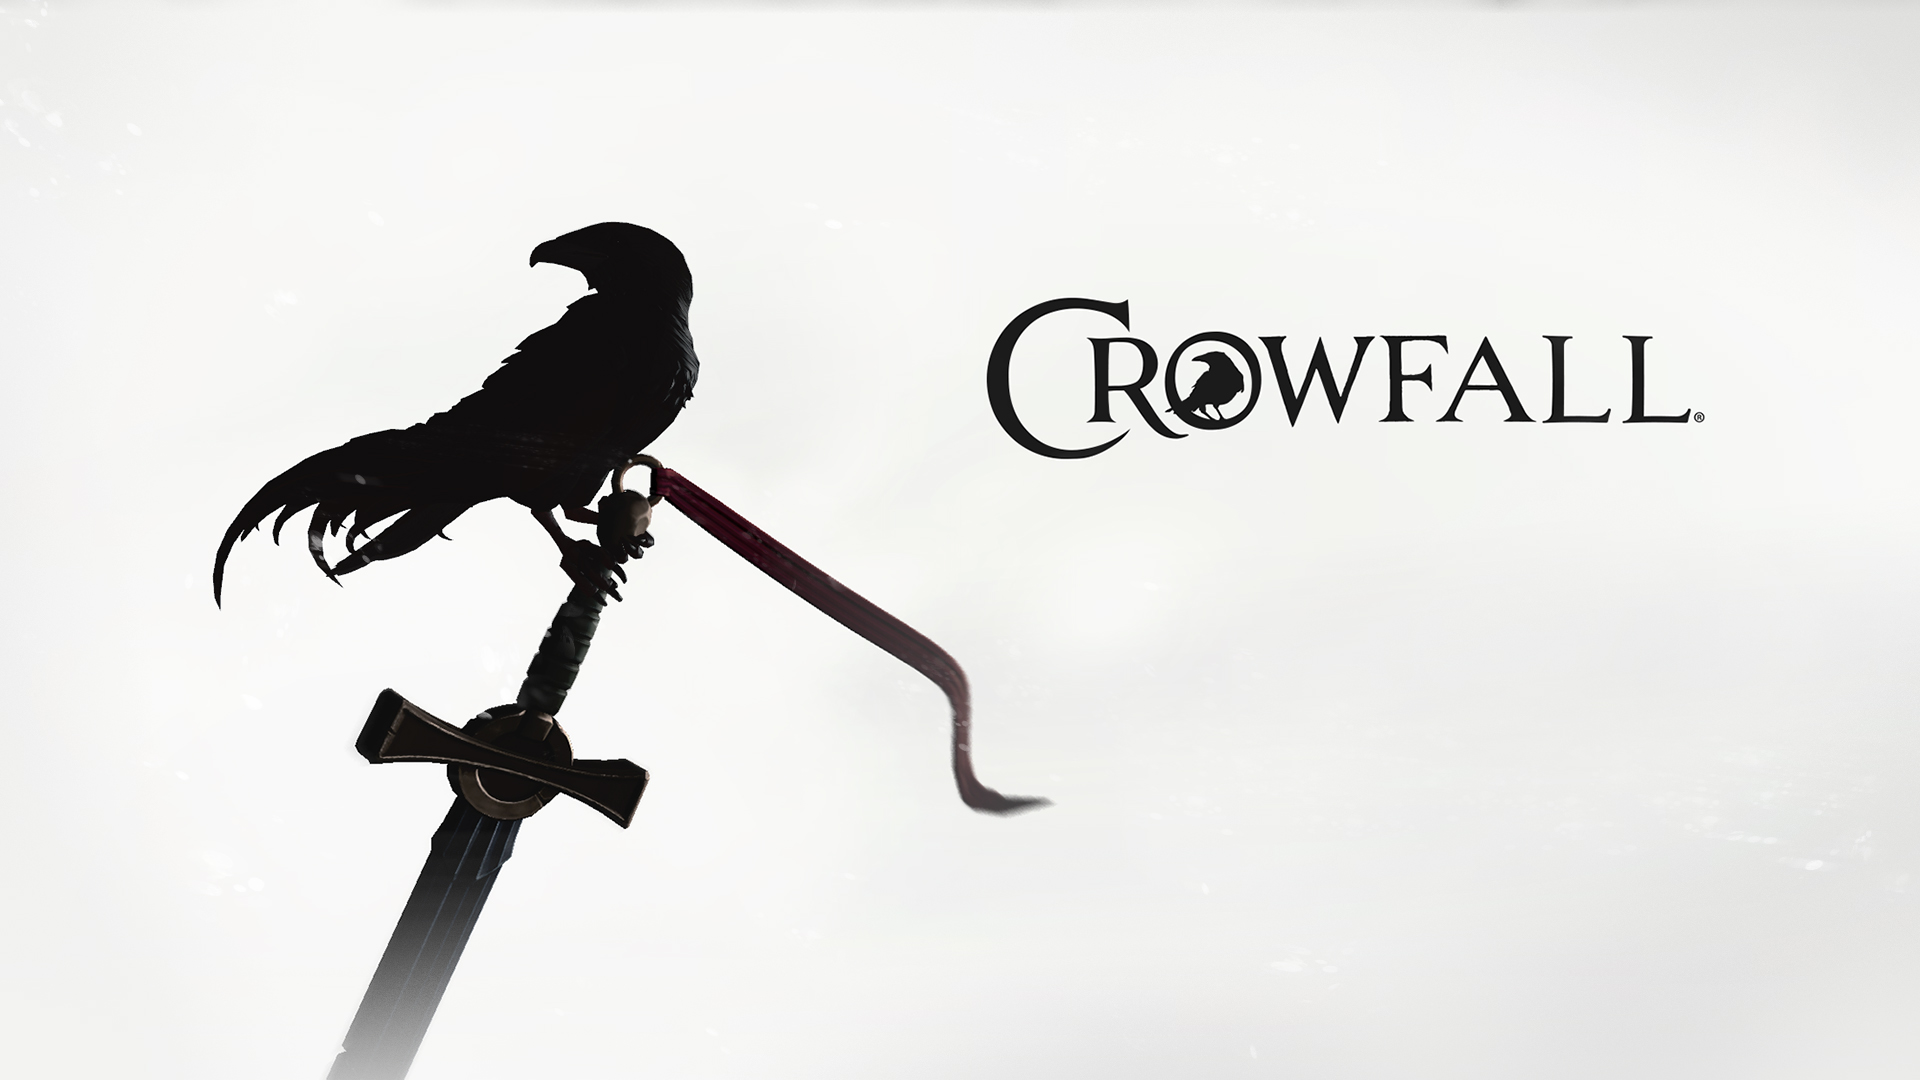 CrowLogin Wallpaper 1920x1080